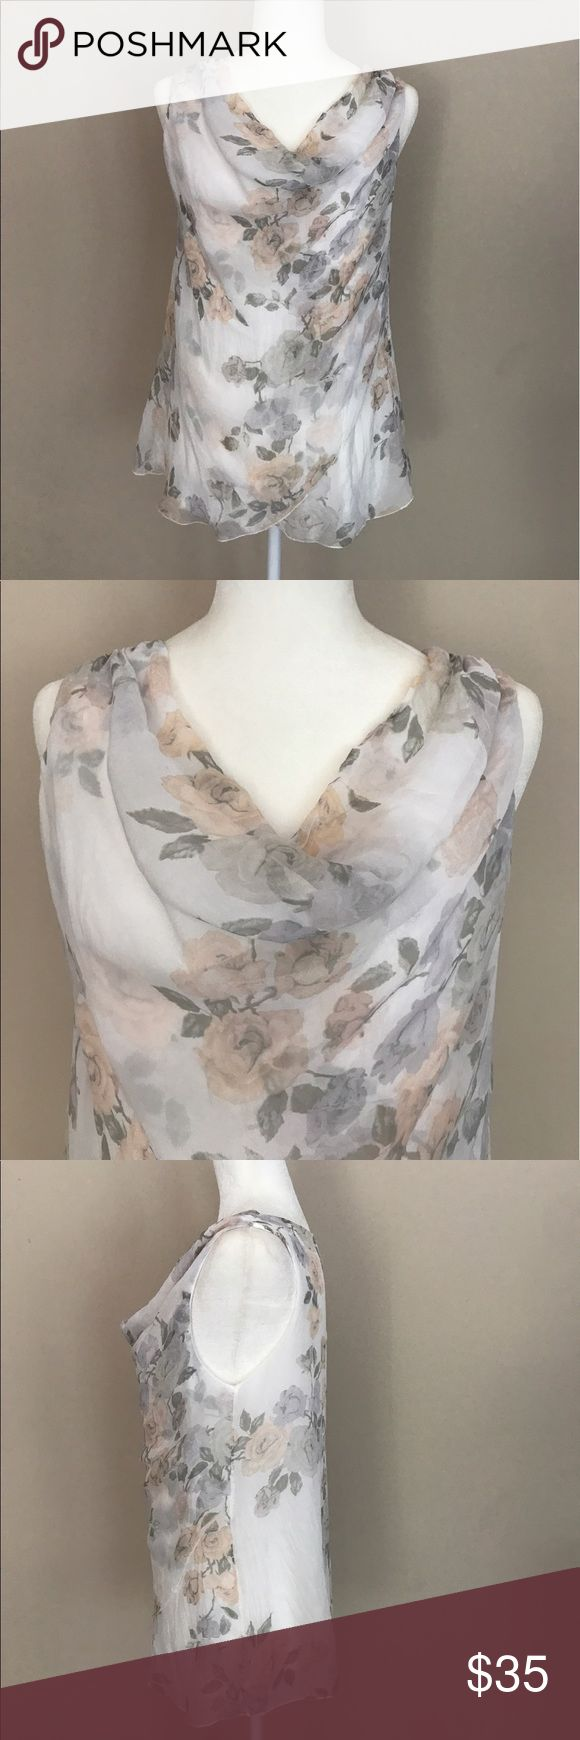 """GIUSY Pure Silk Cowl Neck Flower Blouse Made in Italy - I bought this at a Local Boutique this past year - Now it's a little too big - This Top is Gorgeous with its Peach & Sage Green Flowers - Is Double Lined with a Soft White Shirt underneath - The Outer Layer is 100% Pure Silk and the Front has a Unique Fold Over Layered Design - Approximate Measurements are: Length from Shoulder to Bottom Hem is 25"""" & Bust from Armpit to Armpit is 19"""" - Price Firm unless Bundled for a Discount! Giusy…"""